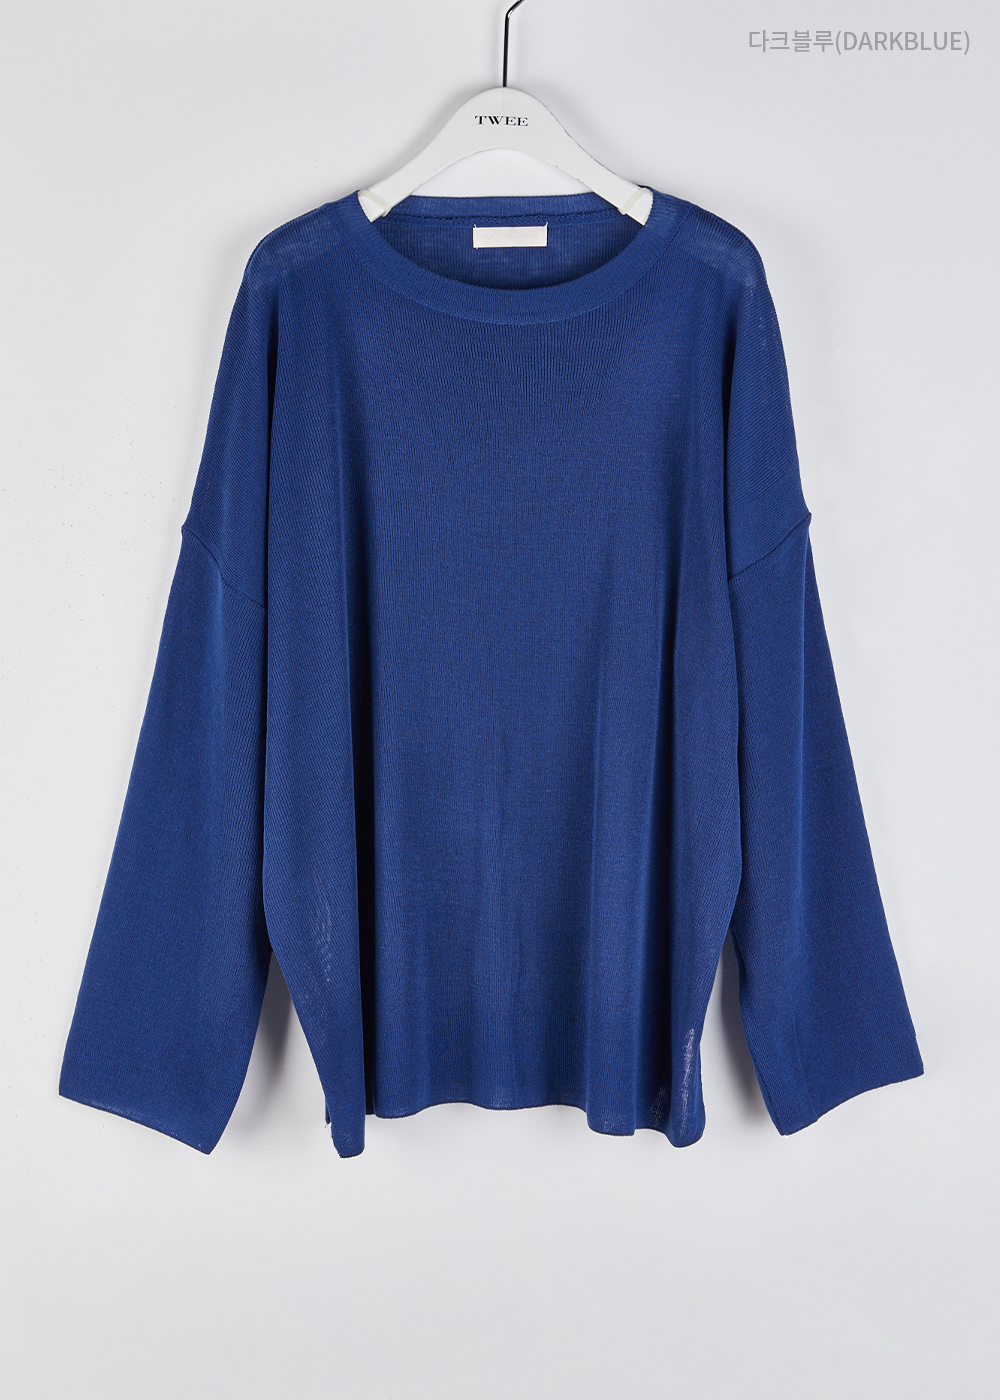 See-through overfit knit